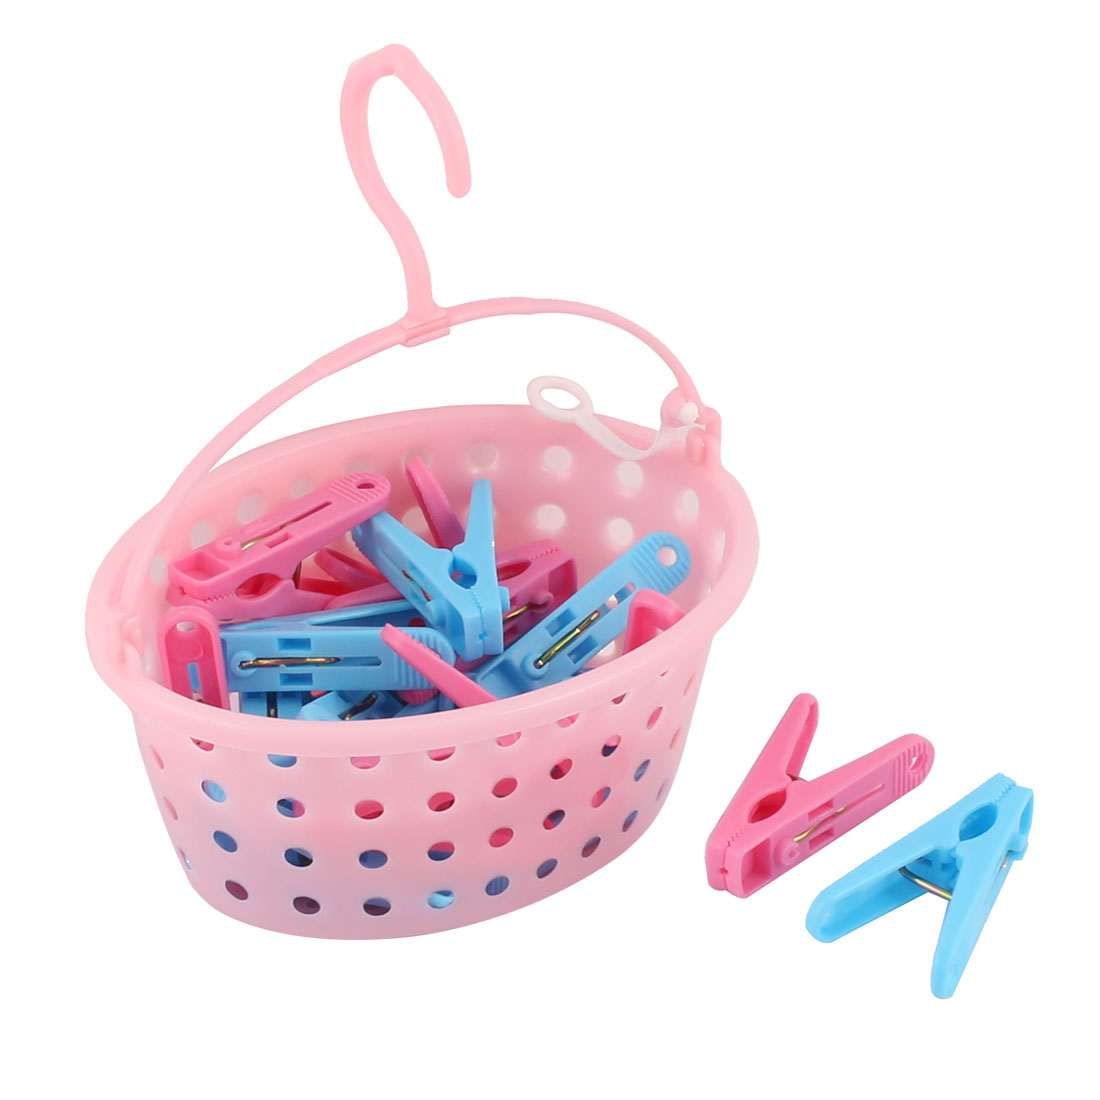 Plastic Clothes Hanging Peg Clip Clamp Clothespin 22 Pcs w Storage Basket Set